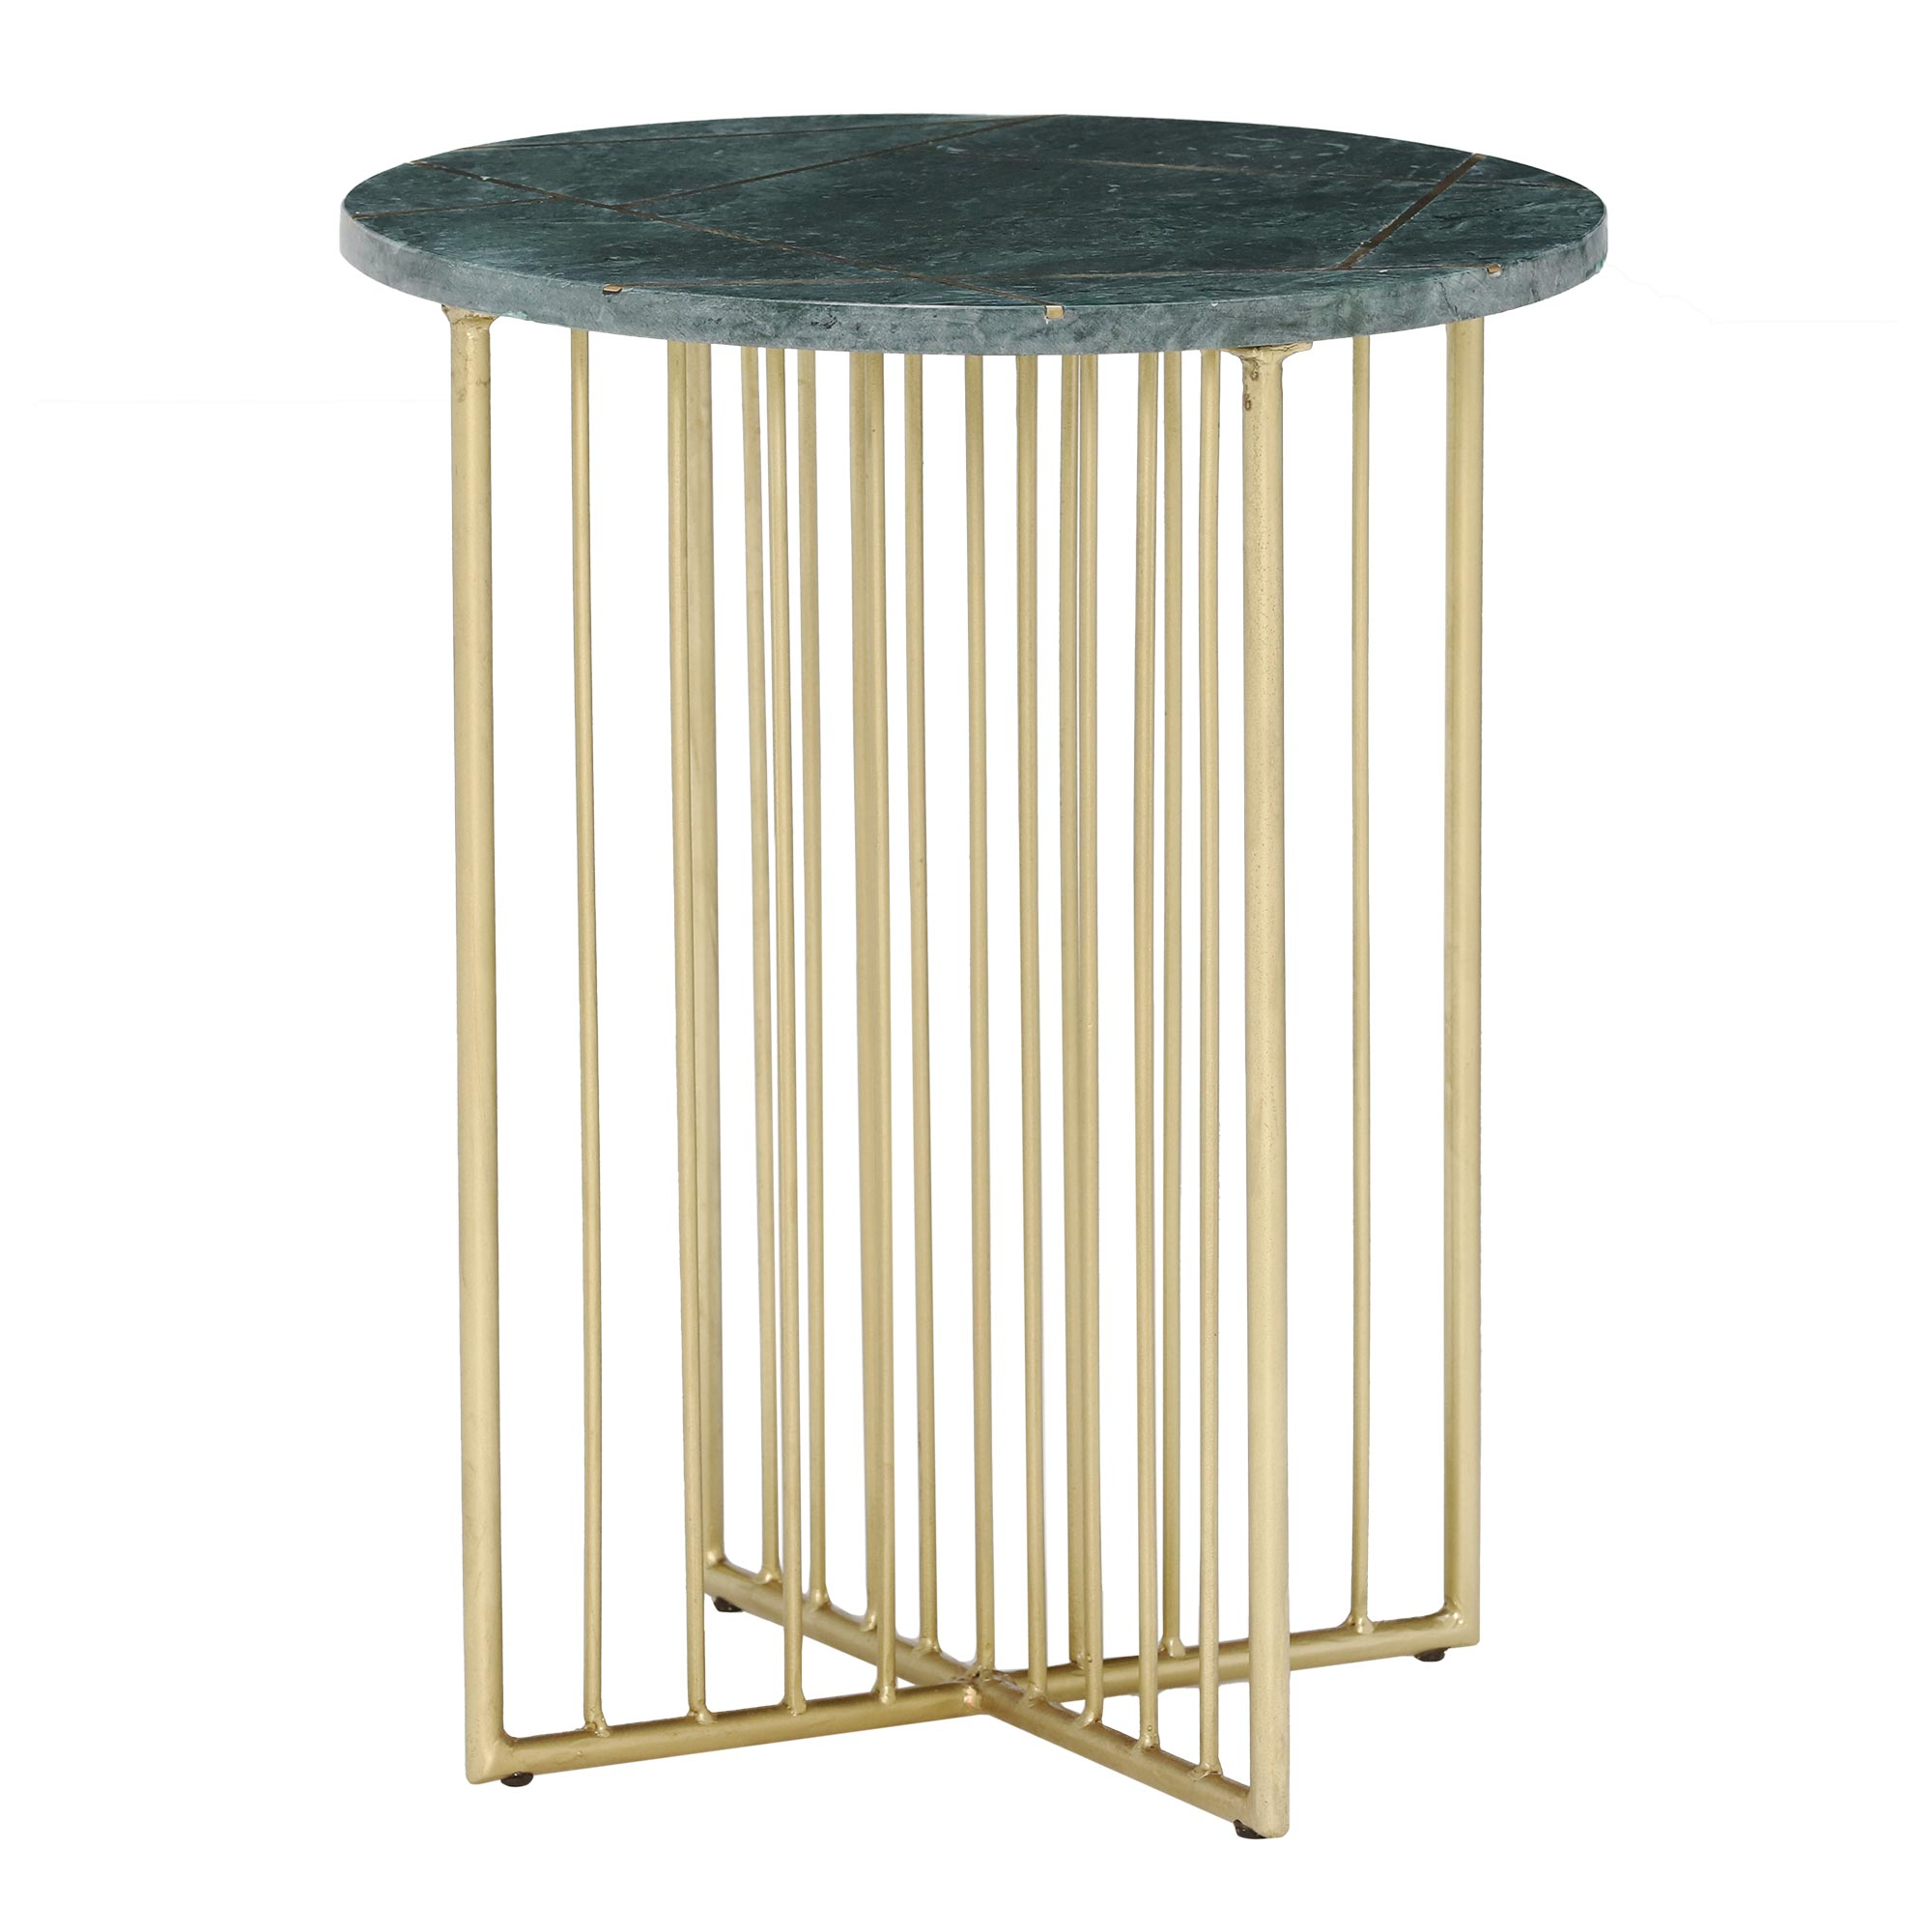 INSIGNIA LAMP TABLE - FRONT DETAIL